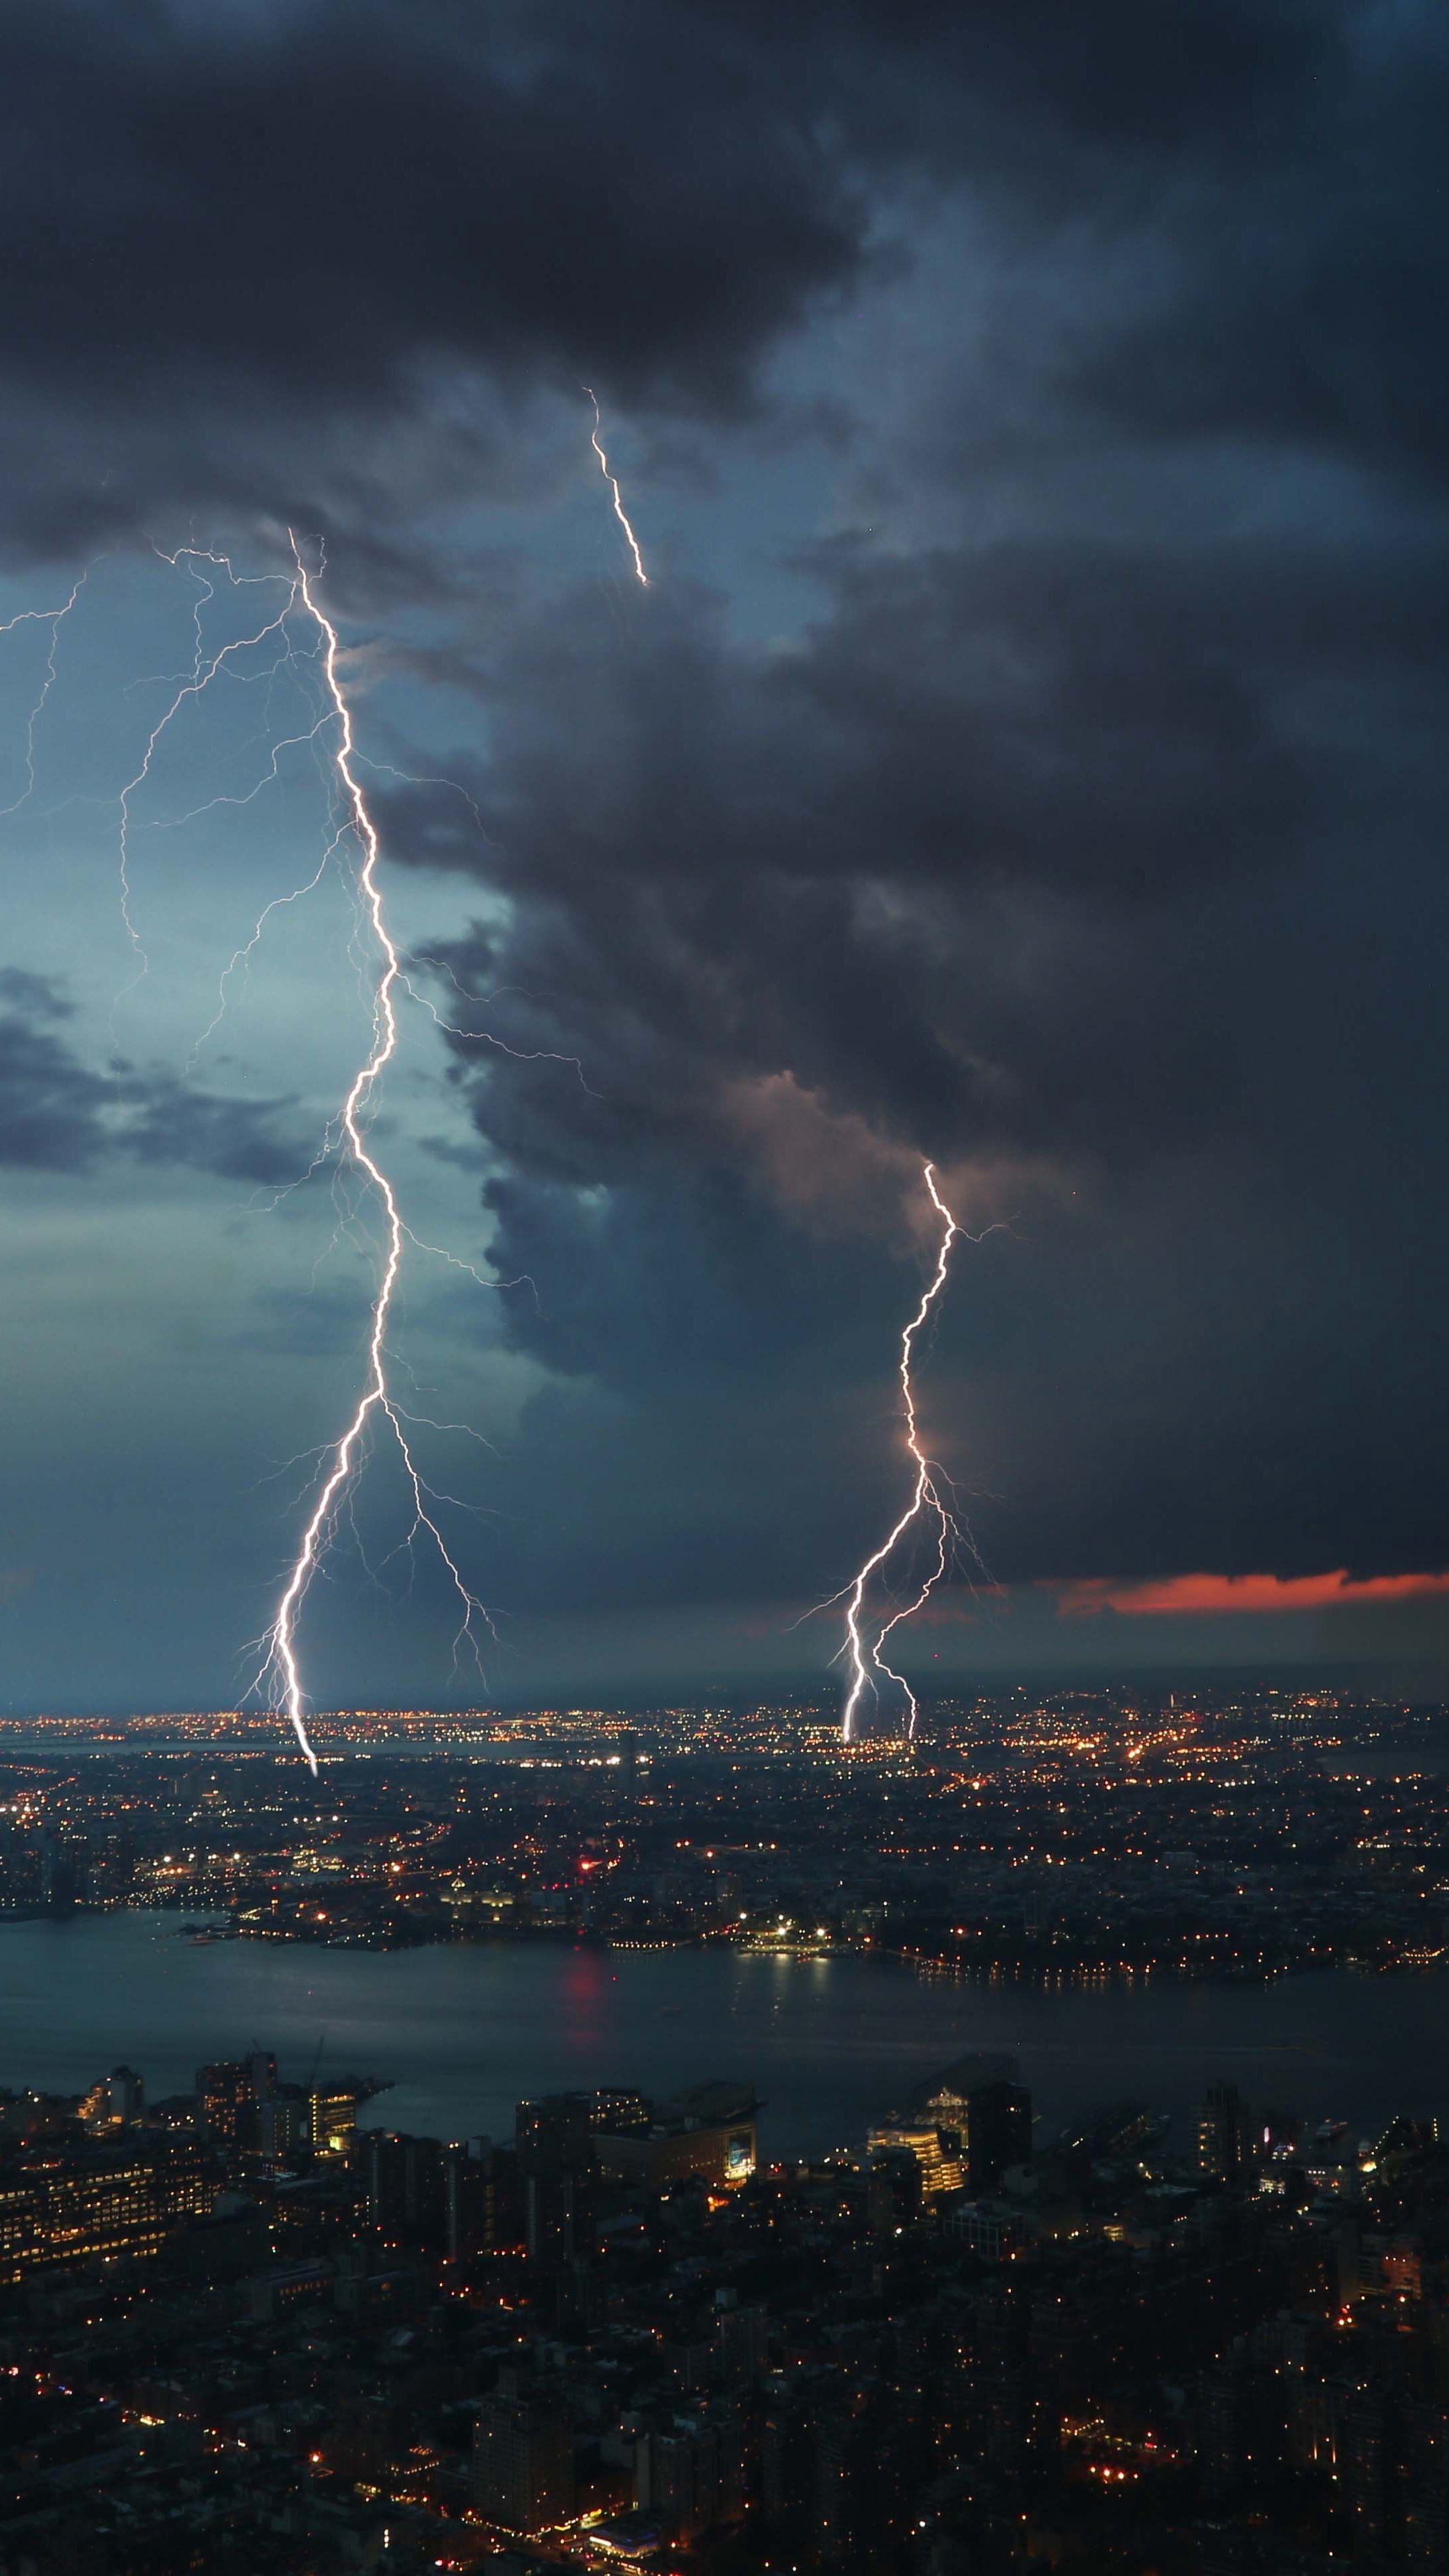 Res: 2160x3840, #Places #nightcity #thunderstorm #topview #wallpapers hd 4k background for  android :)